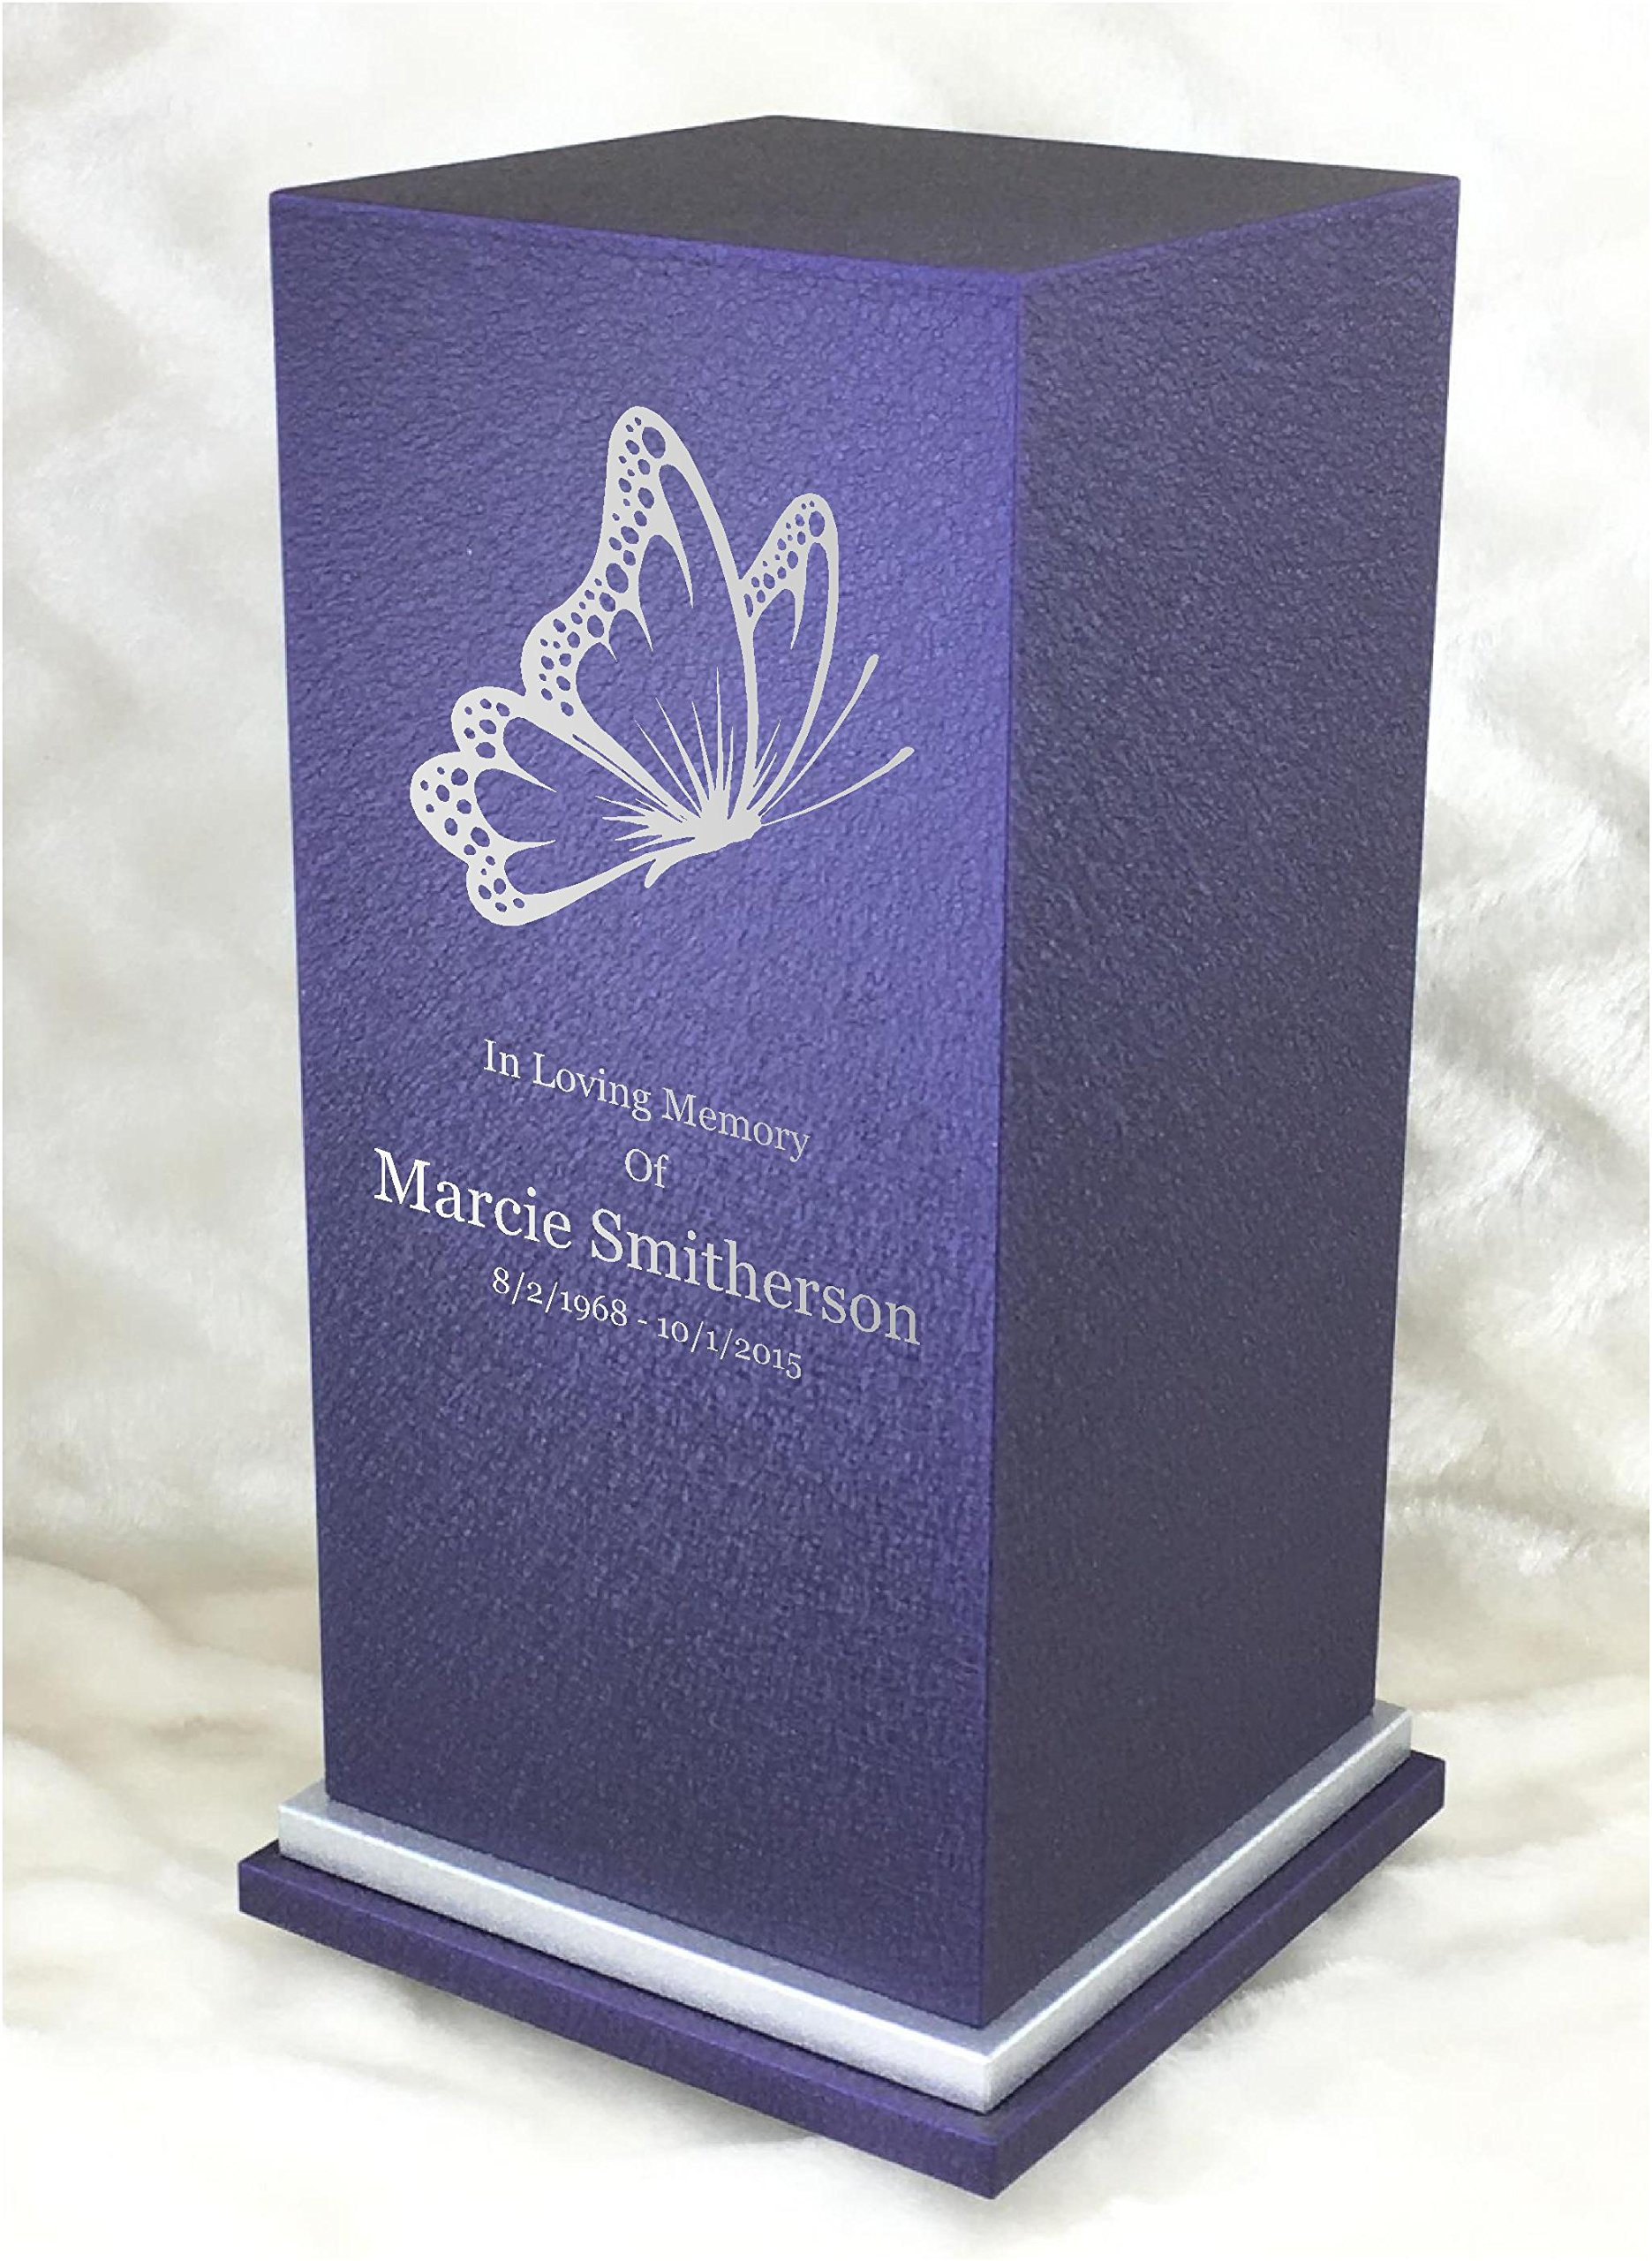 PERSONALIZED Engraved Butterfly Cremation Urn for Human Ashes-Made in America-Handcrafted in the USA by Amaranthine Urns (Adult Funeral Urn up to 200 lbs living weight) Eaton SE- (Purple Velvet) by Amaranthine Urn Company (Image #1)